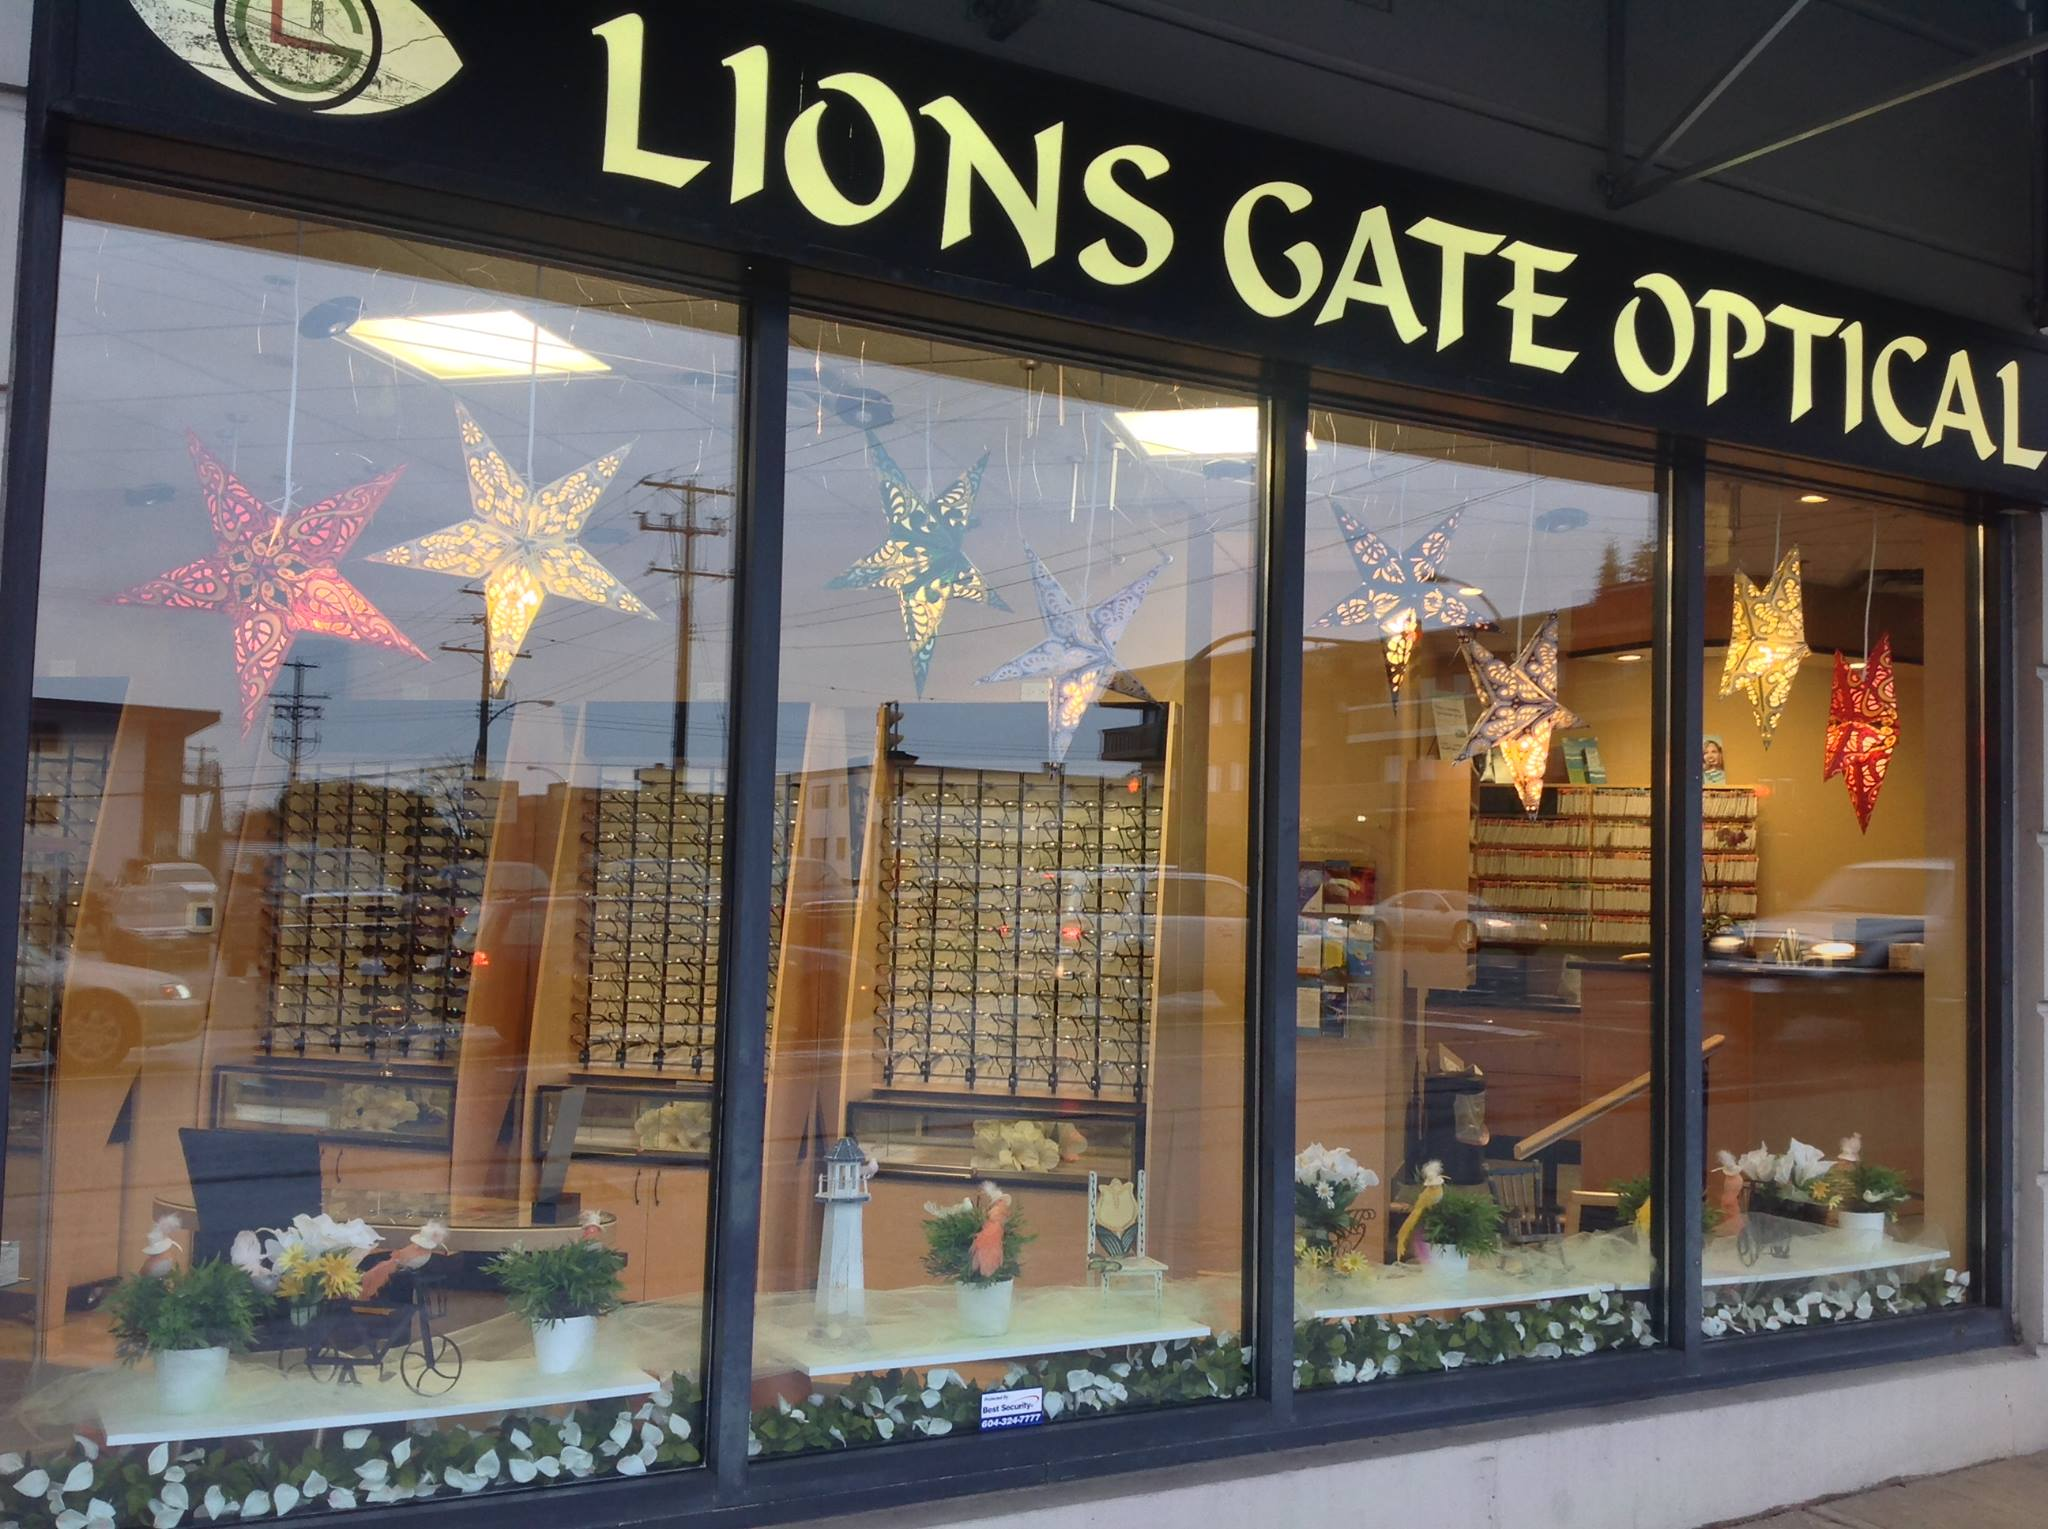 Lions Gate Optical Exterior, located in North Vancouver, British Columbia